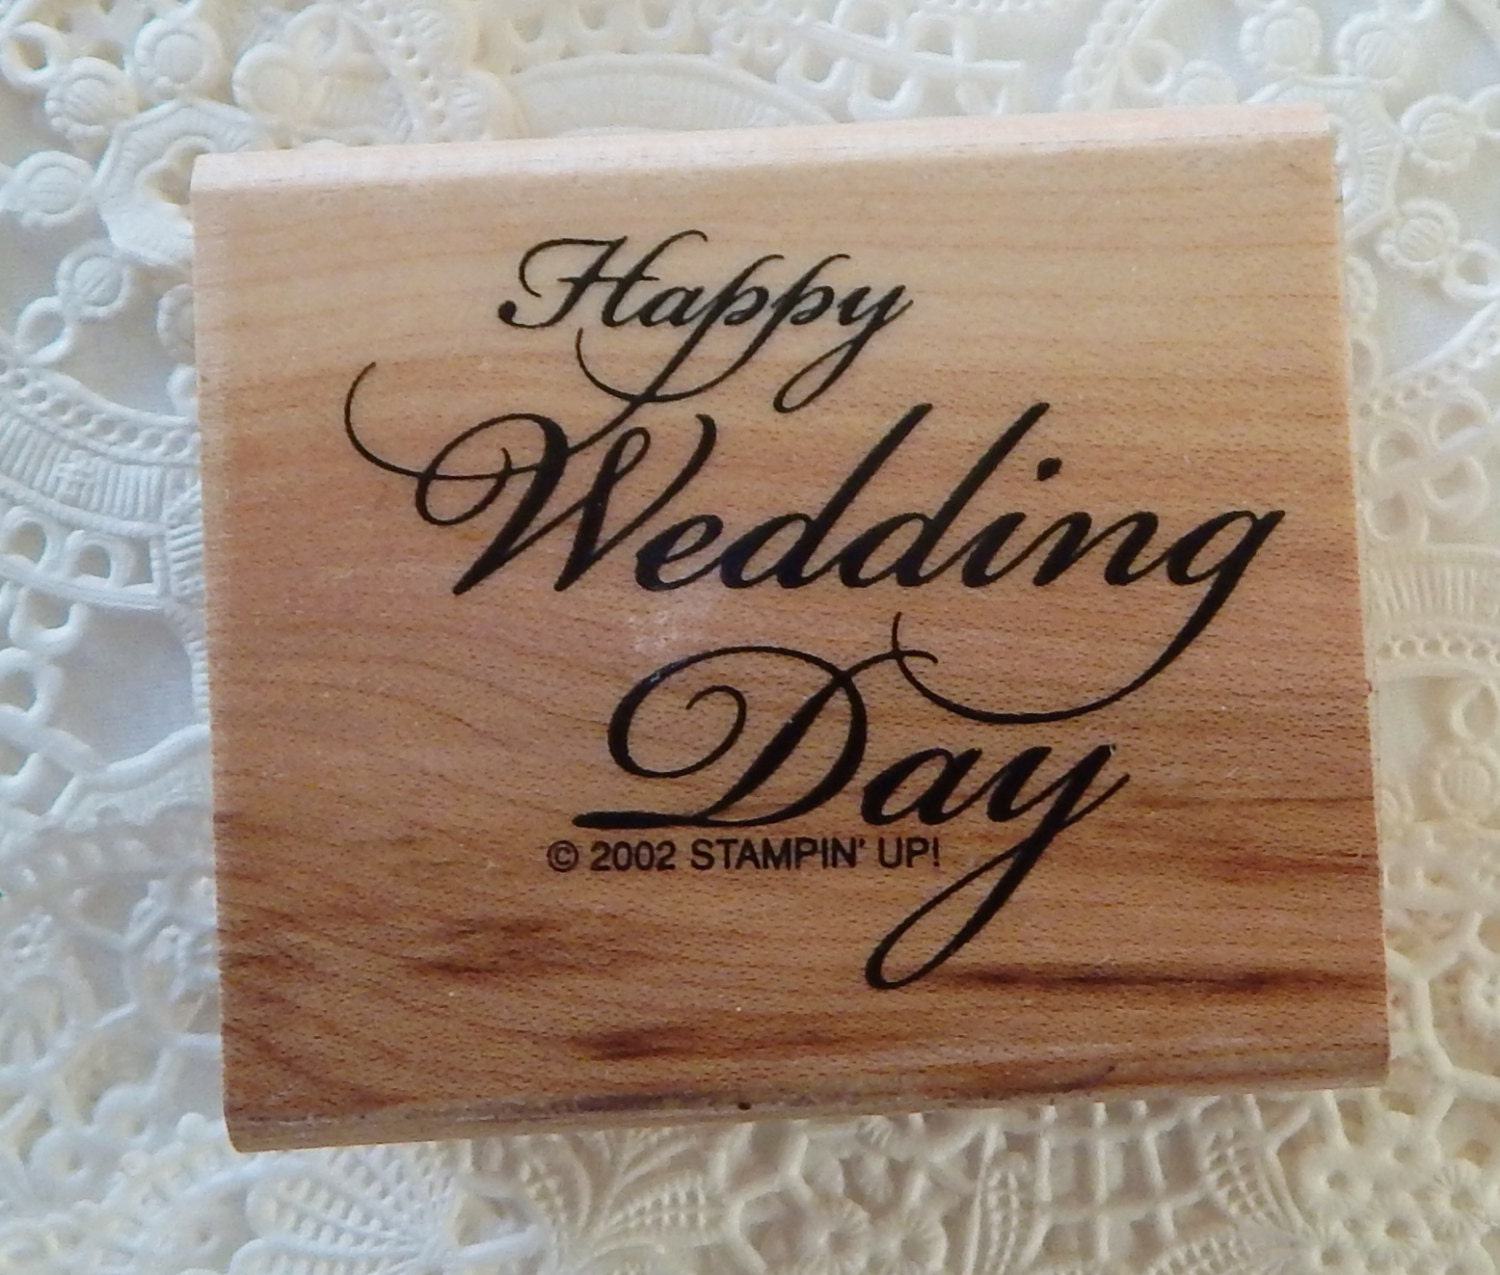 Wedding Day: Happy Wedding Day Rubber Stamp Calligraphy Stampin' Up